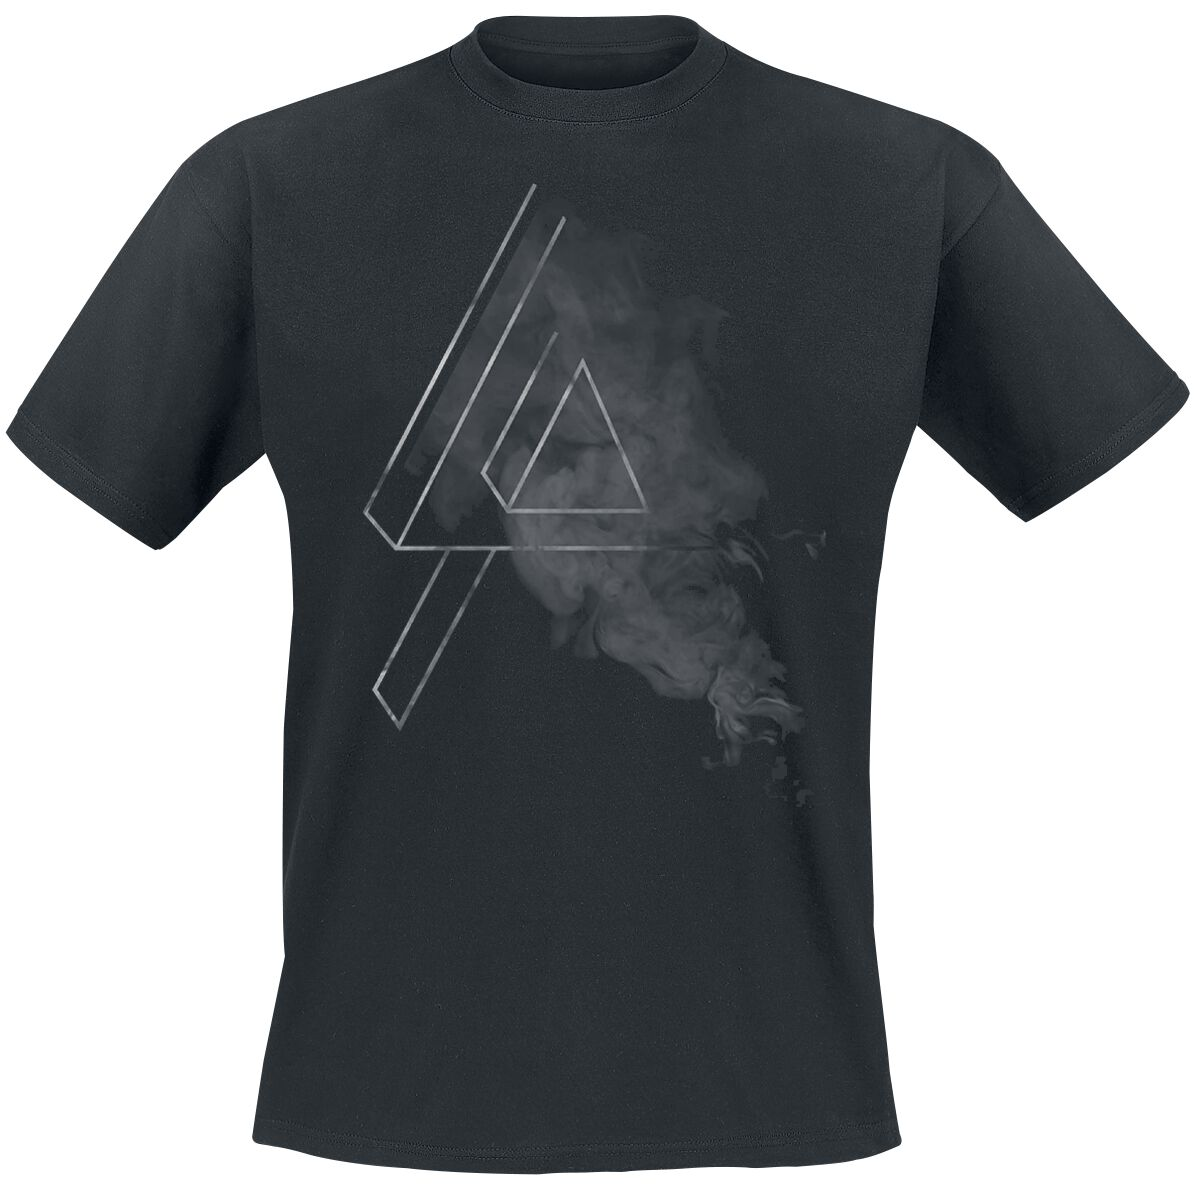 Image of   Linkin Park Smoke Logo T-Shirt sort